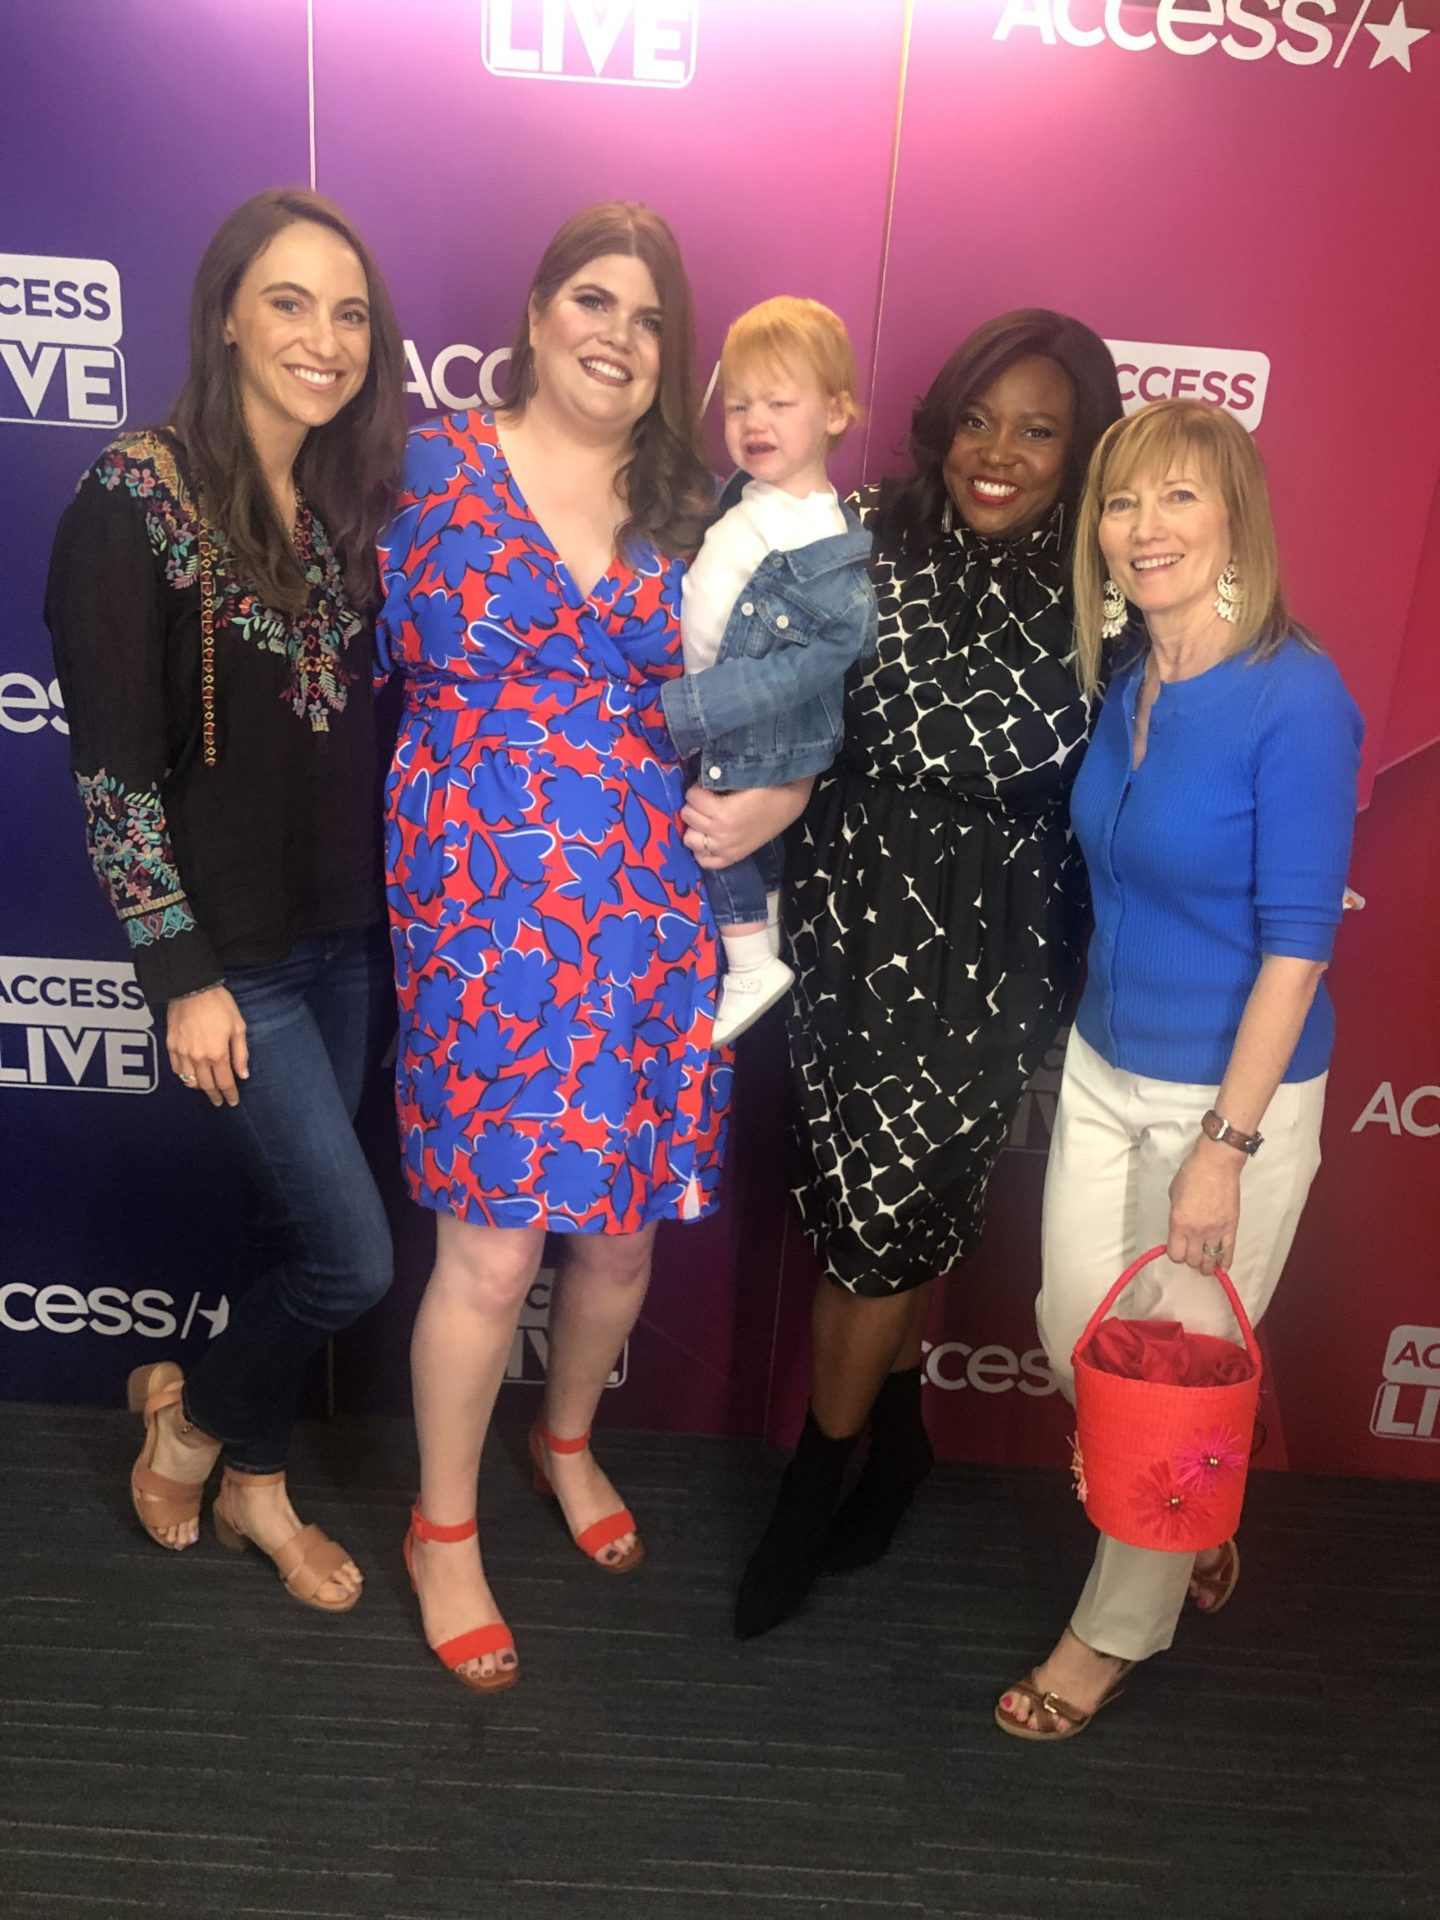 plus size mom makeover on access live